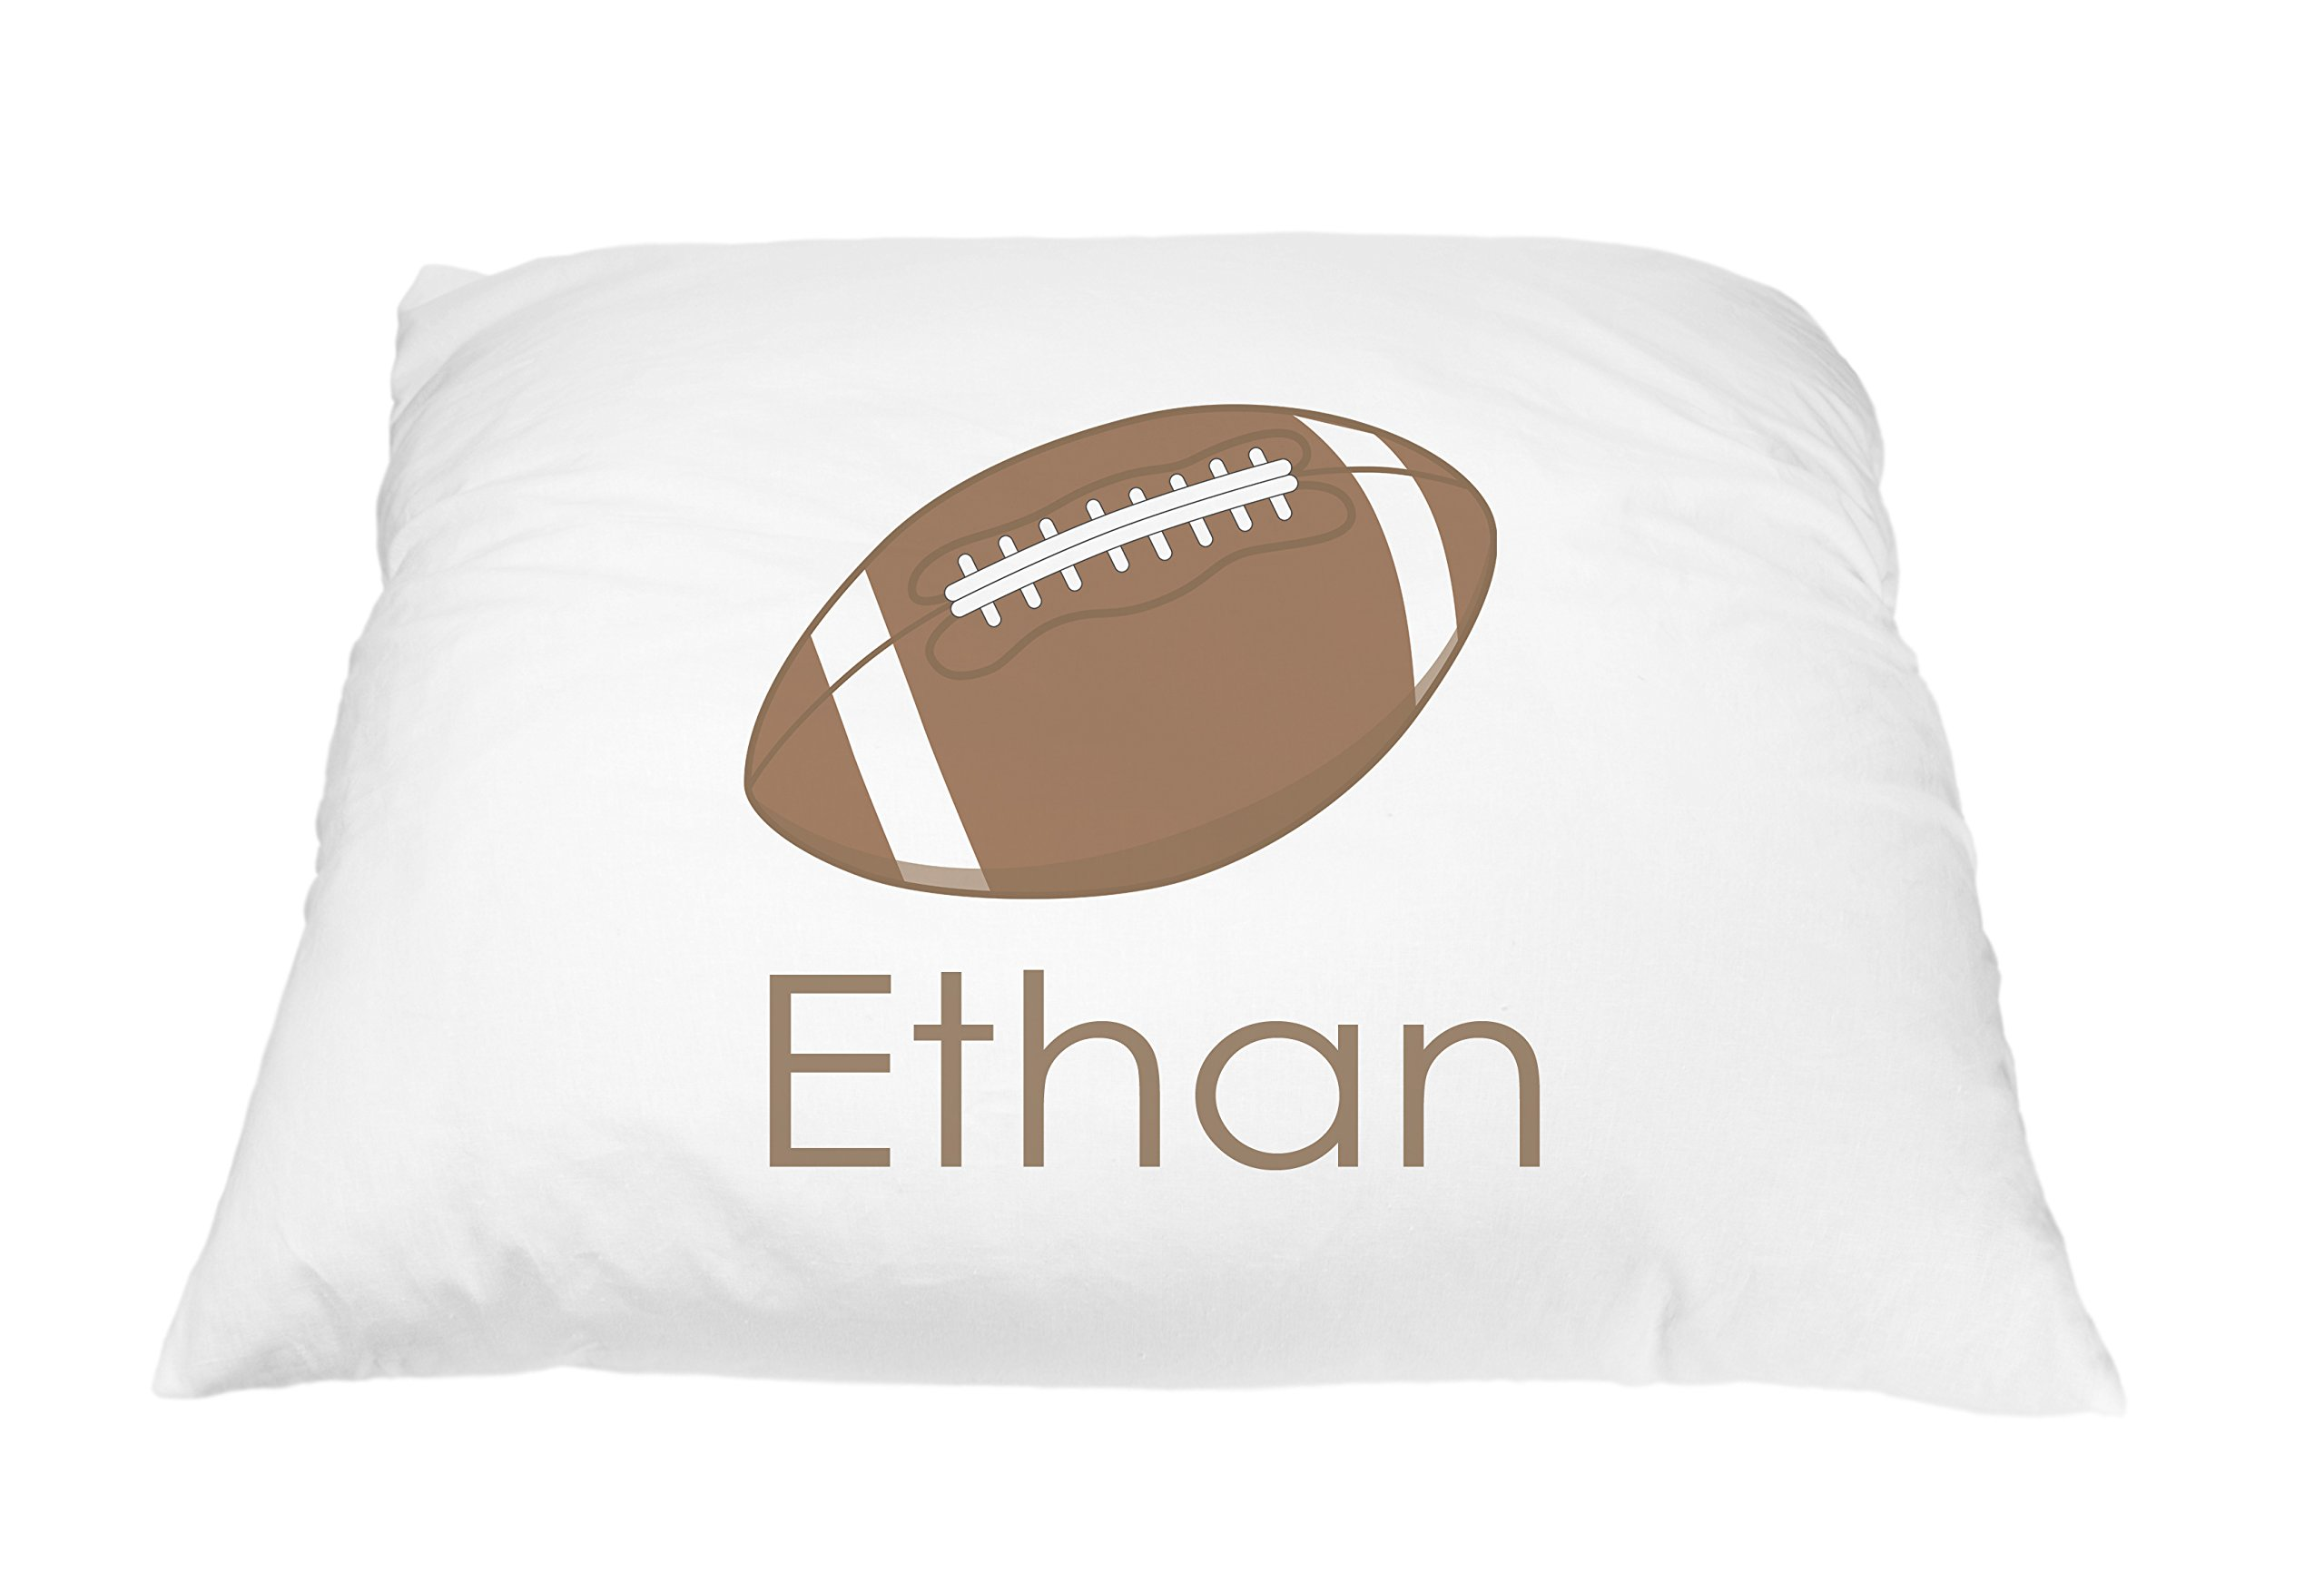 Personalized Kid's Football Sports Pillowcase Microfiber Polyester 20 by 30 Inches, Football Pillowcase, Boys Football Room Décor, Personalized Football Gifts, Toddler Football Pillow Case